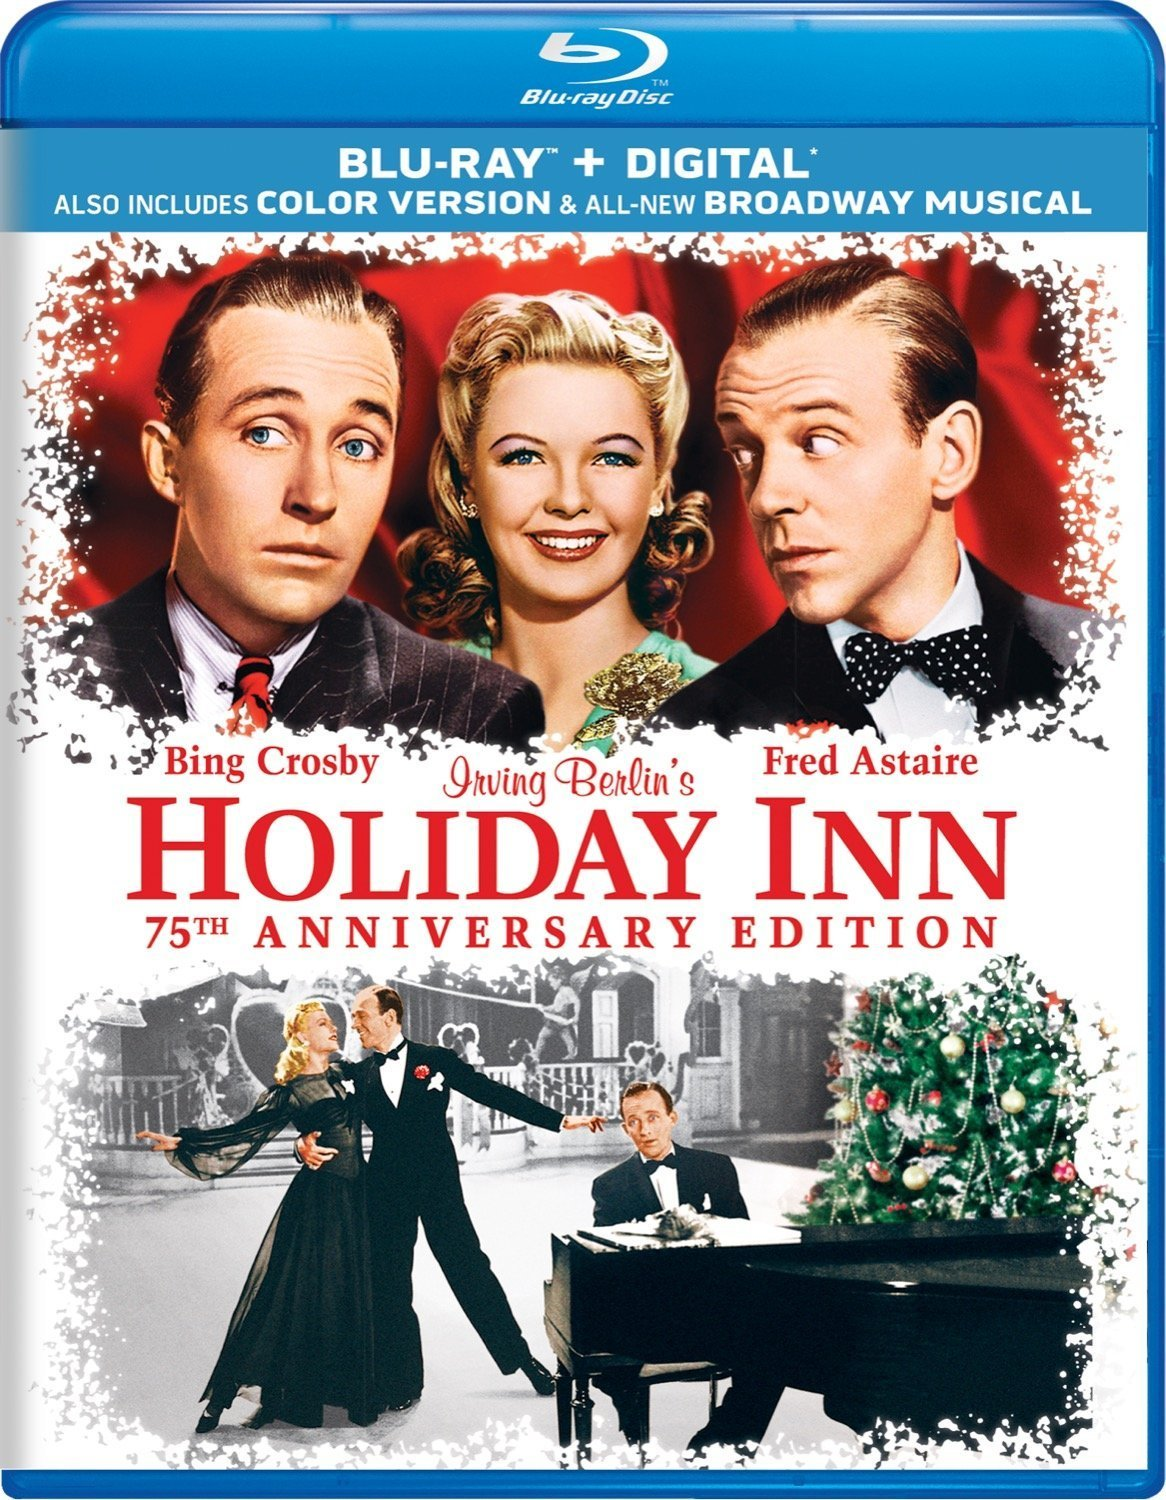 Holiday Inn Blu-ray Review